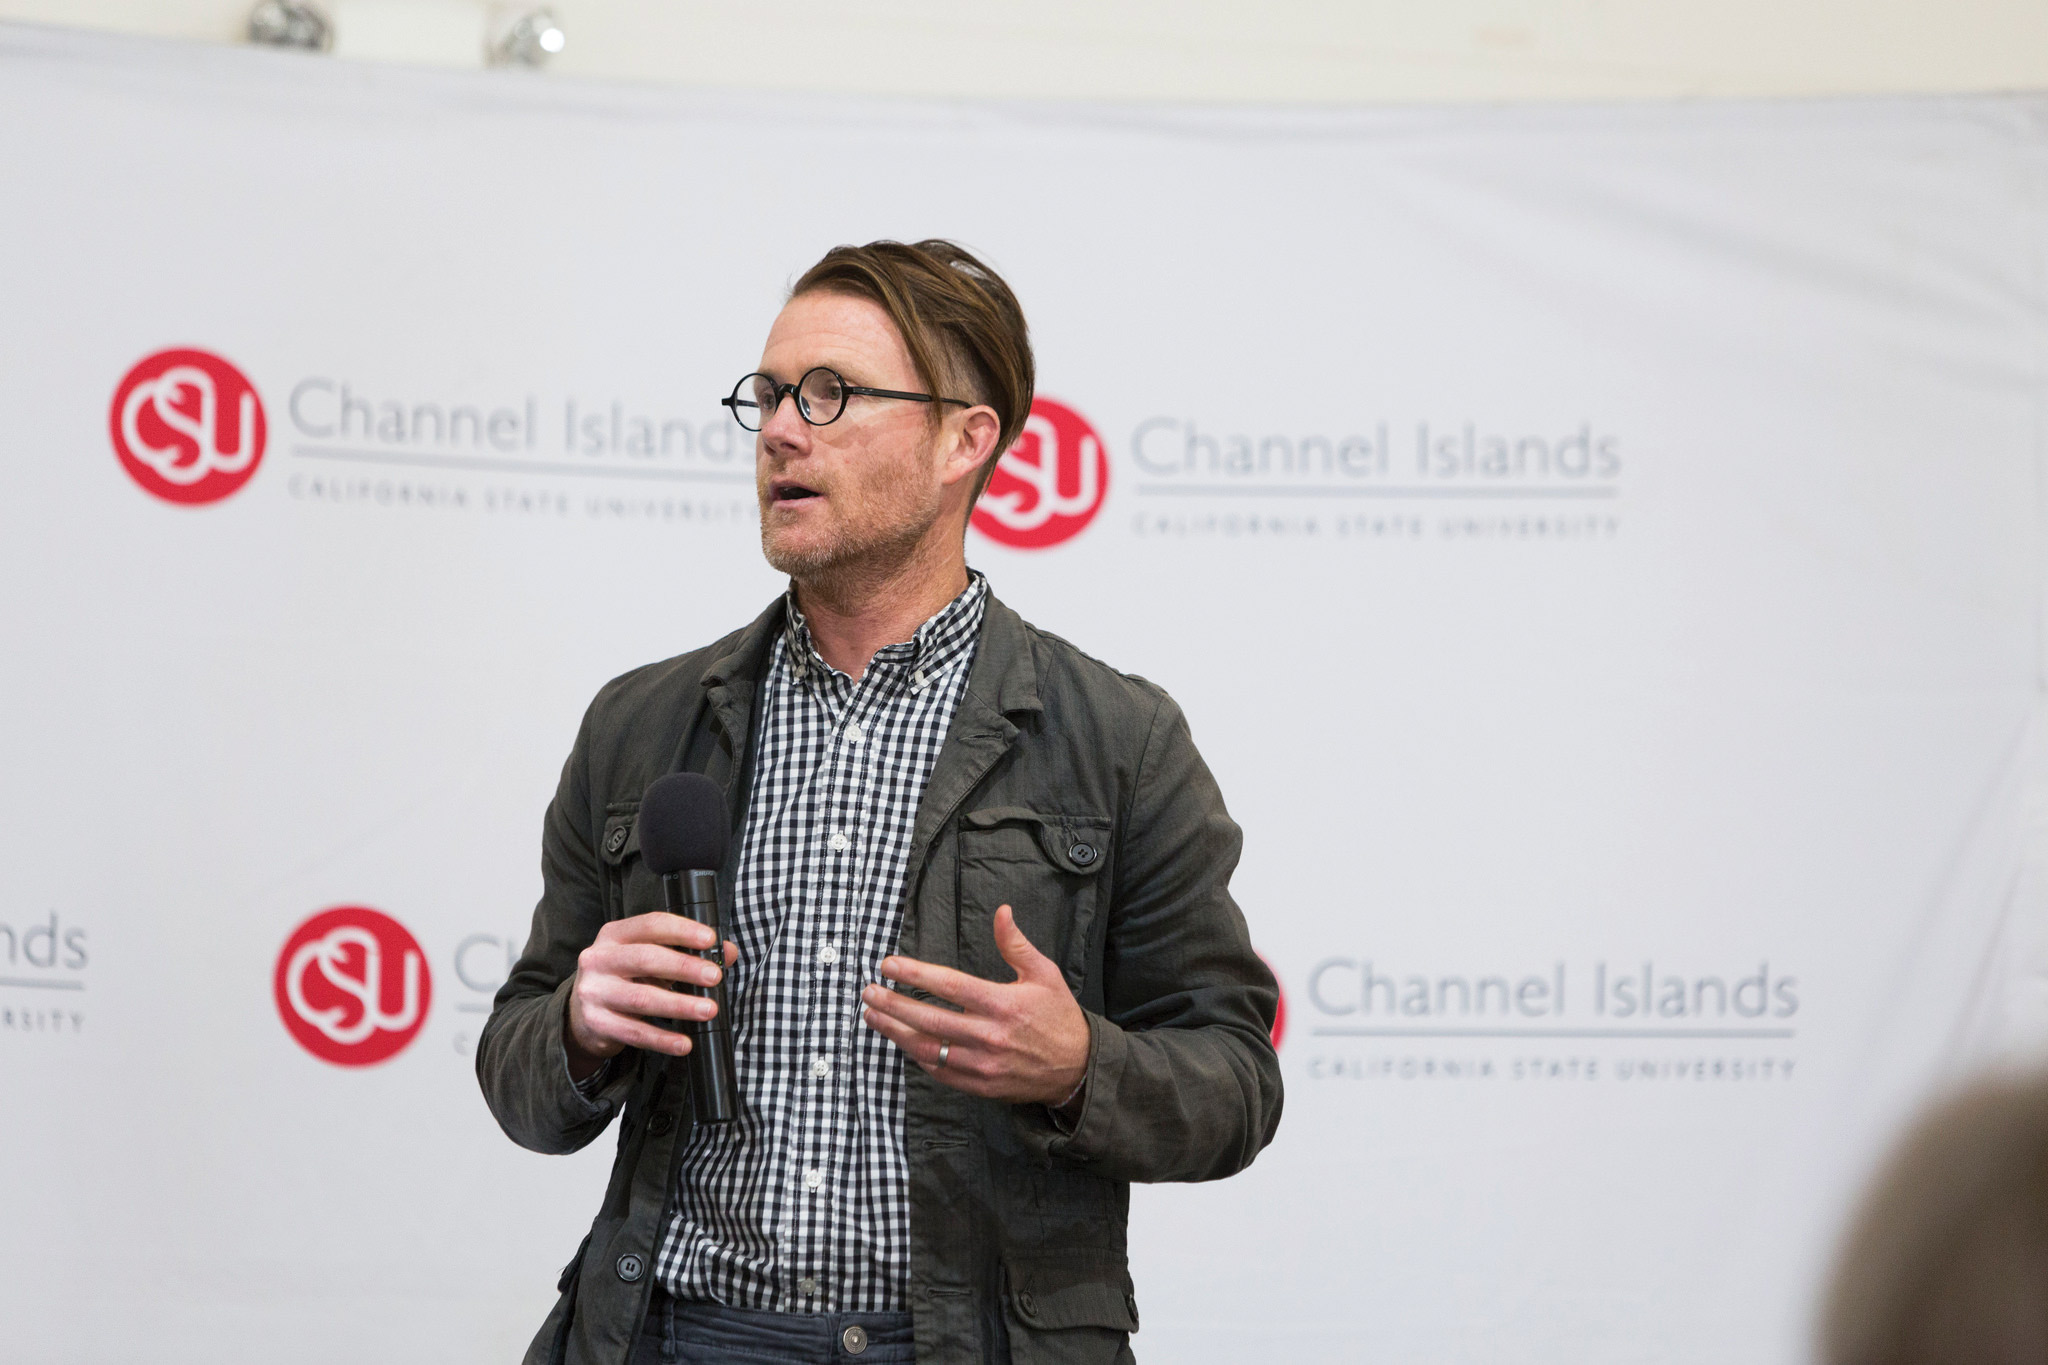 Jonathan Mooney visited CI on Feb. 13 in order to discuss his experiences growing up as a child with dyslexia and ADHD. Photo credit to CI Communication and Marketing.